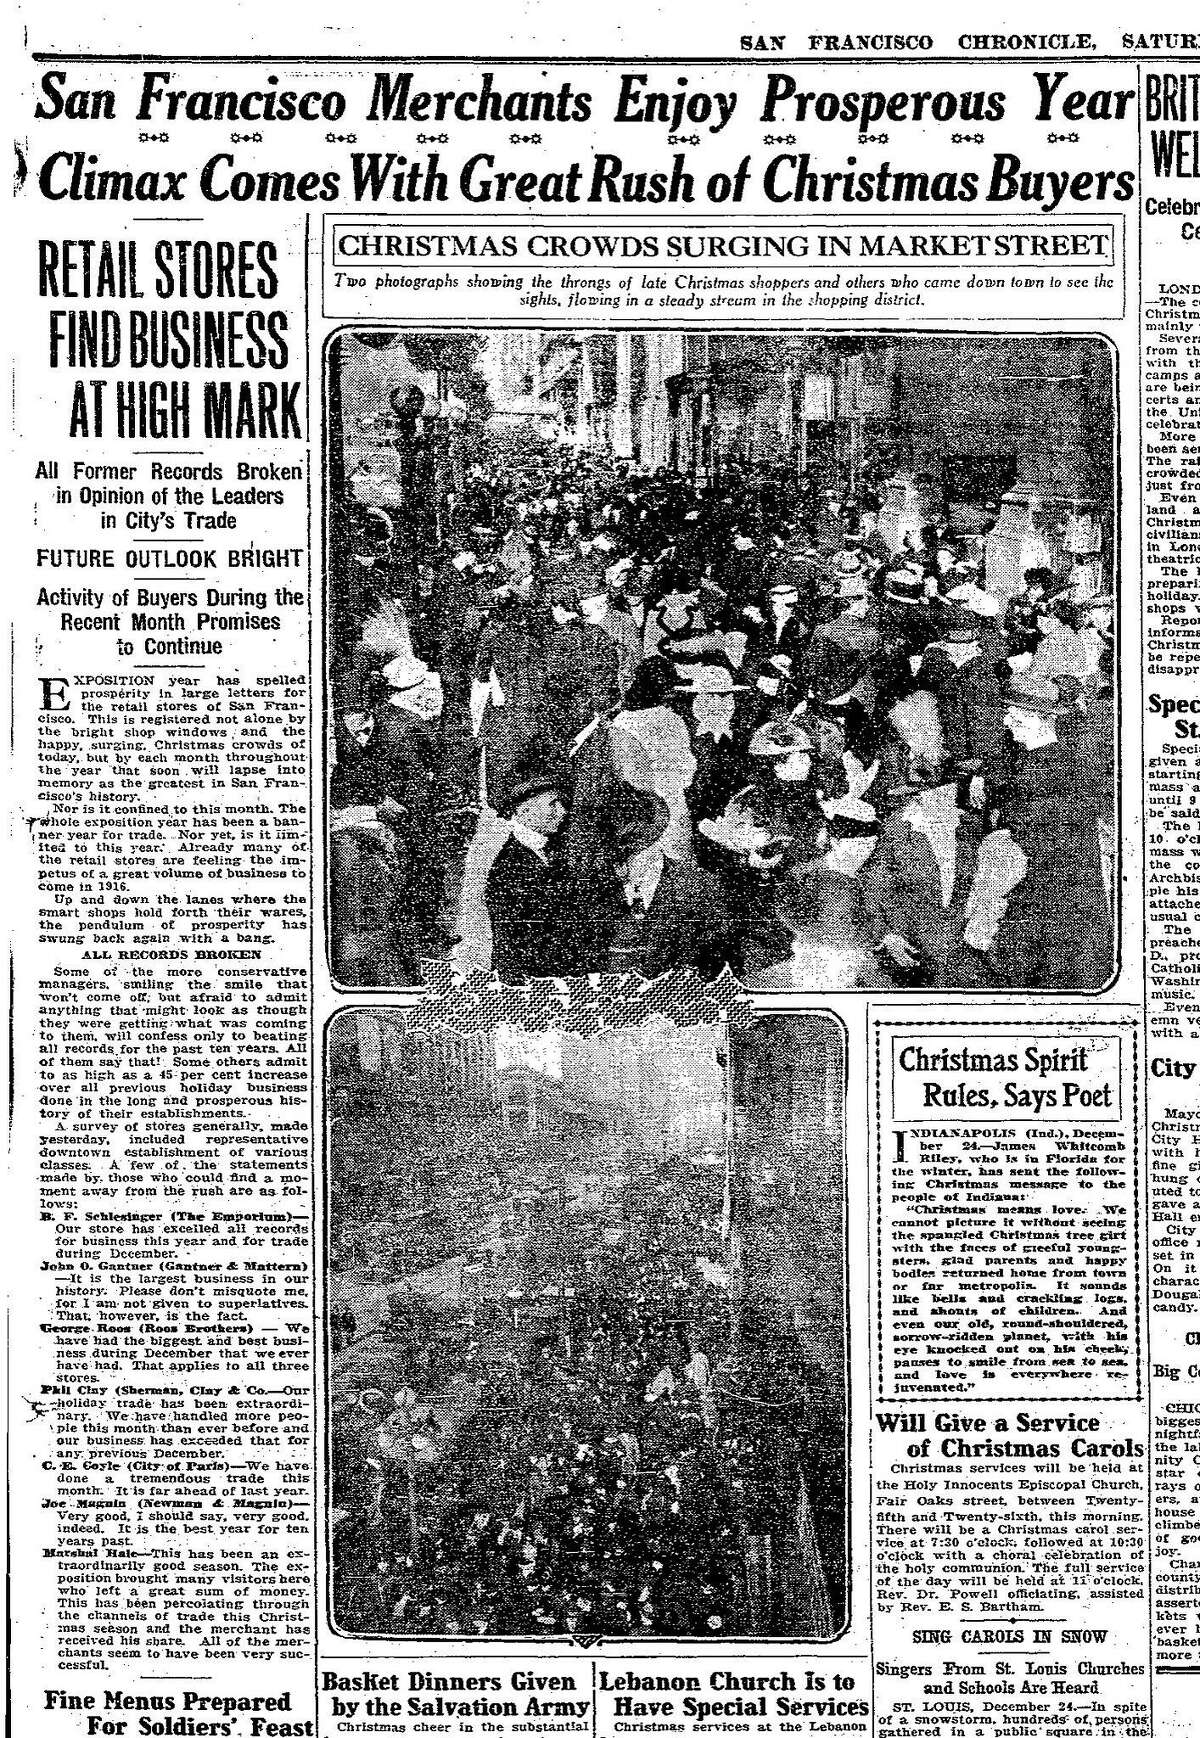 A page from the San Francisco Chronicle, December 25, 1915